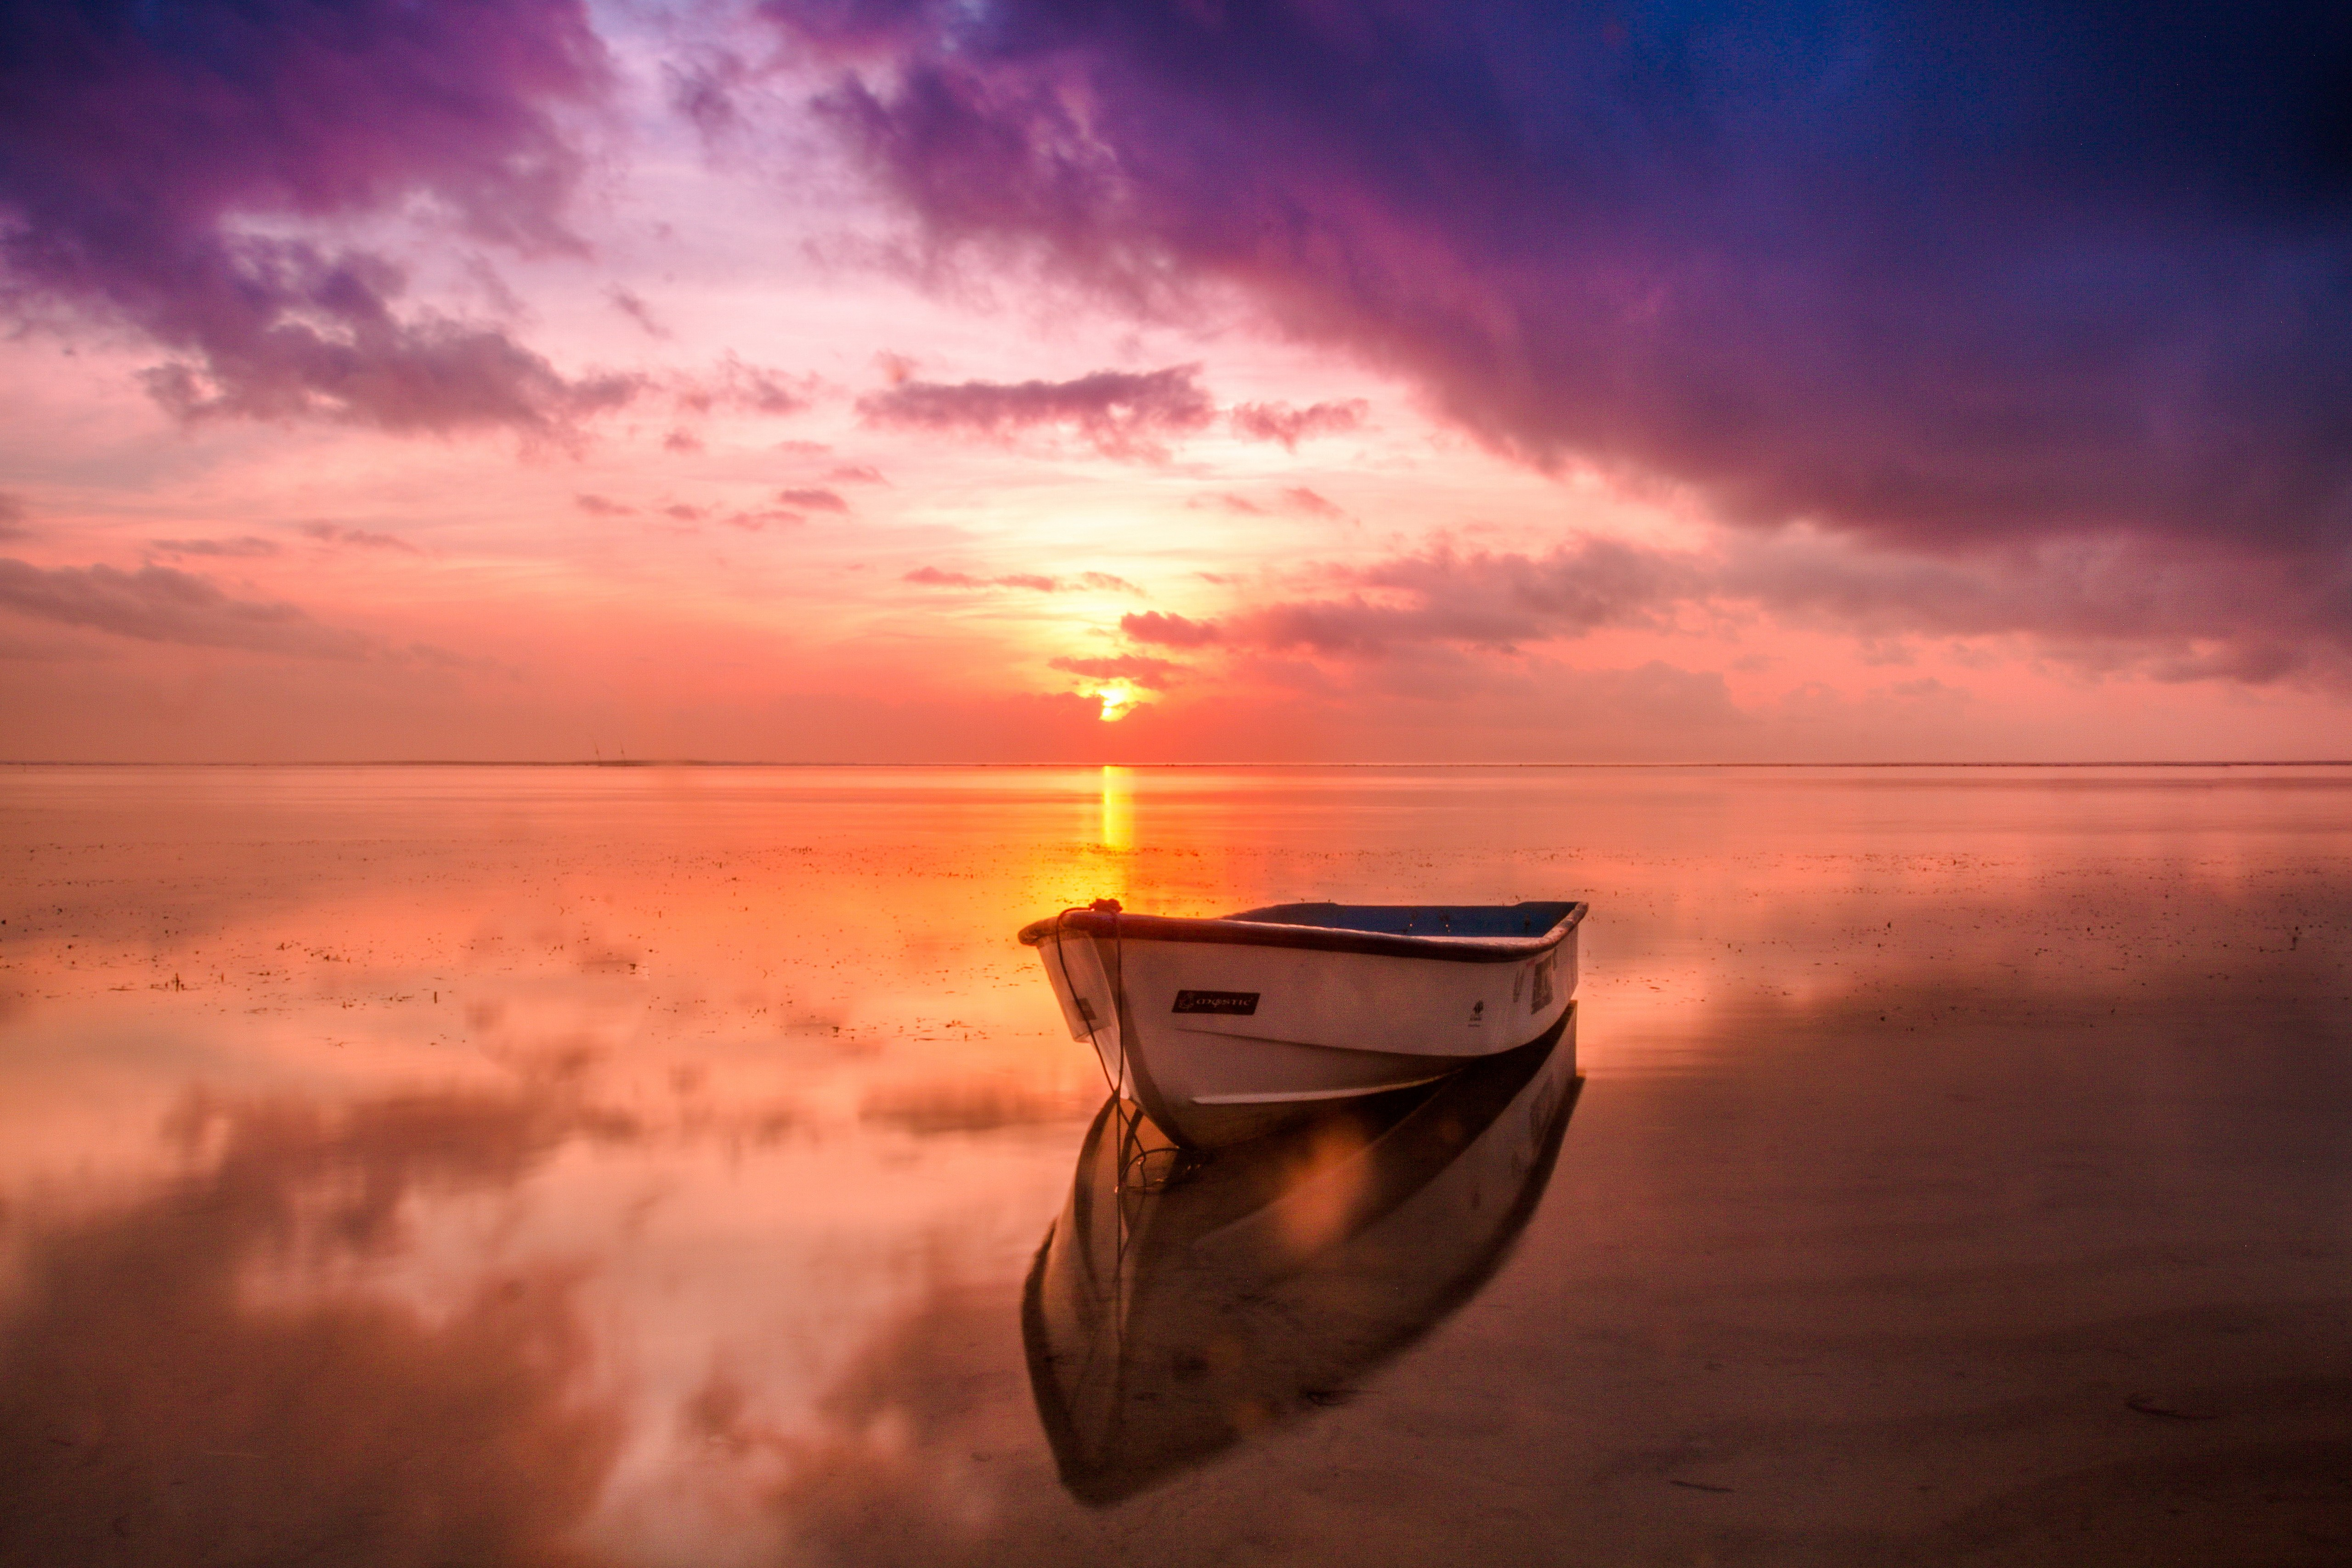 Boat Sea Sunset, HD Nature, 4k Wallpapers, Images, Backgrounds ...